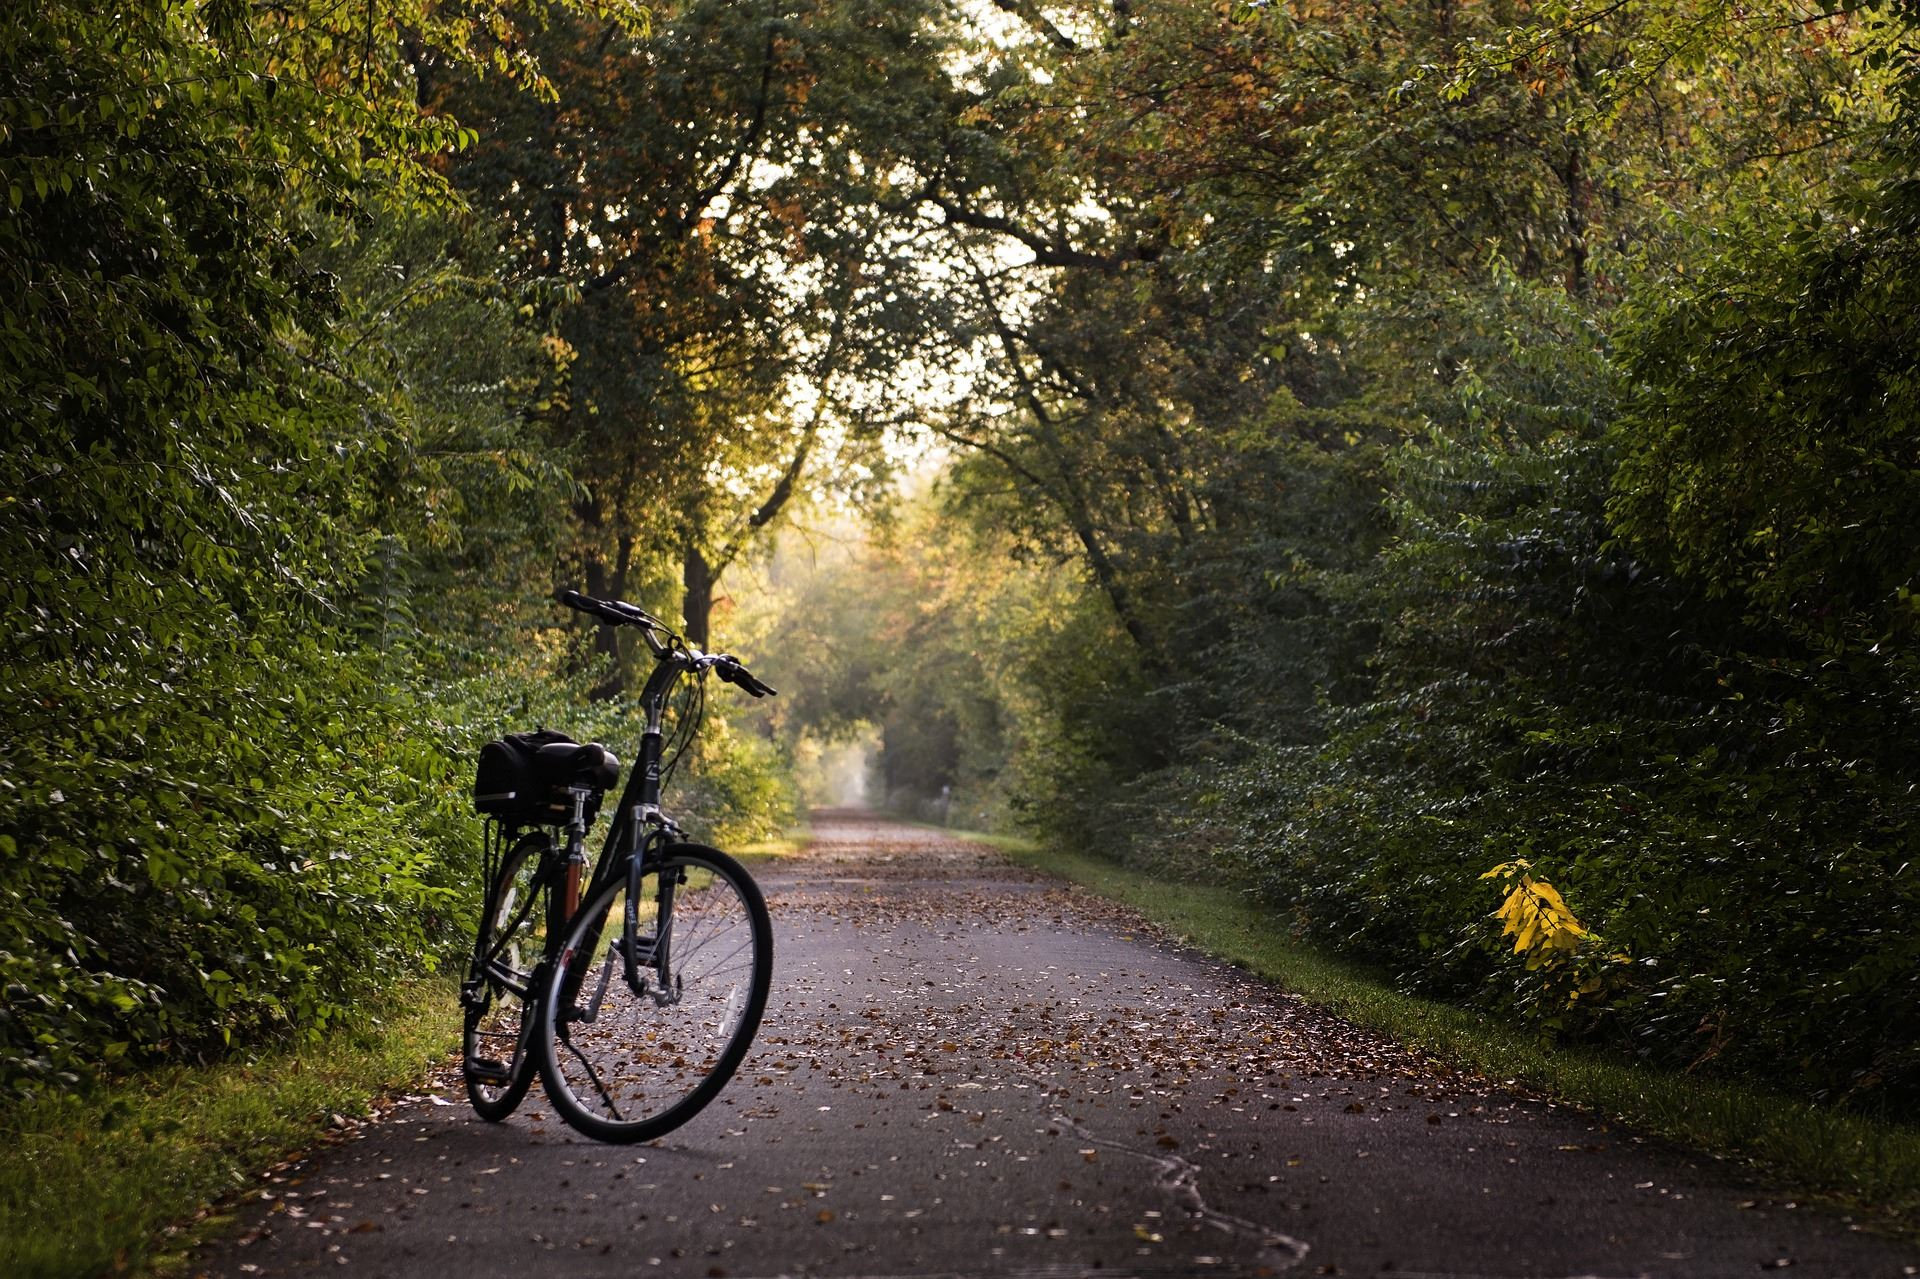 Recreational trail